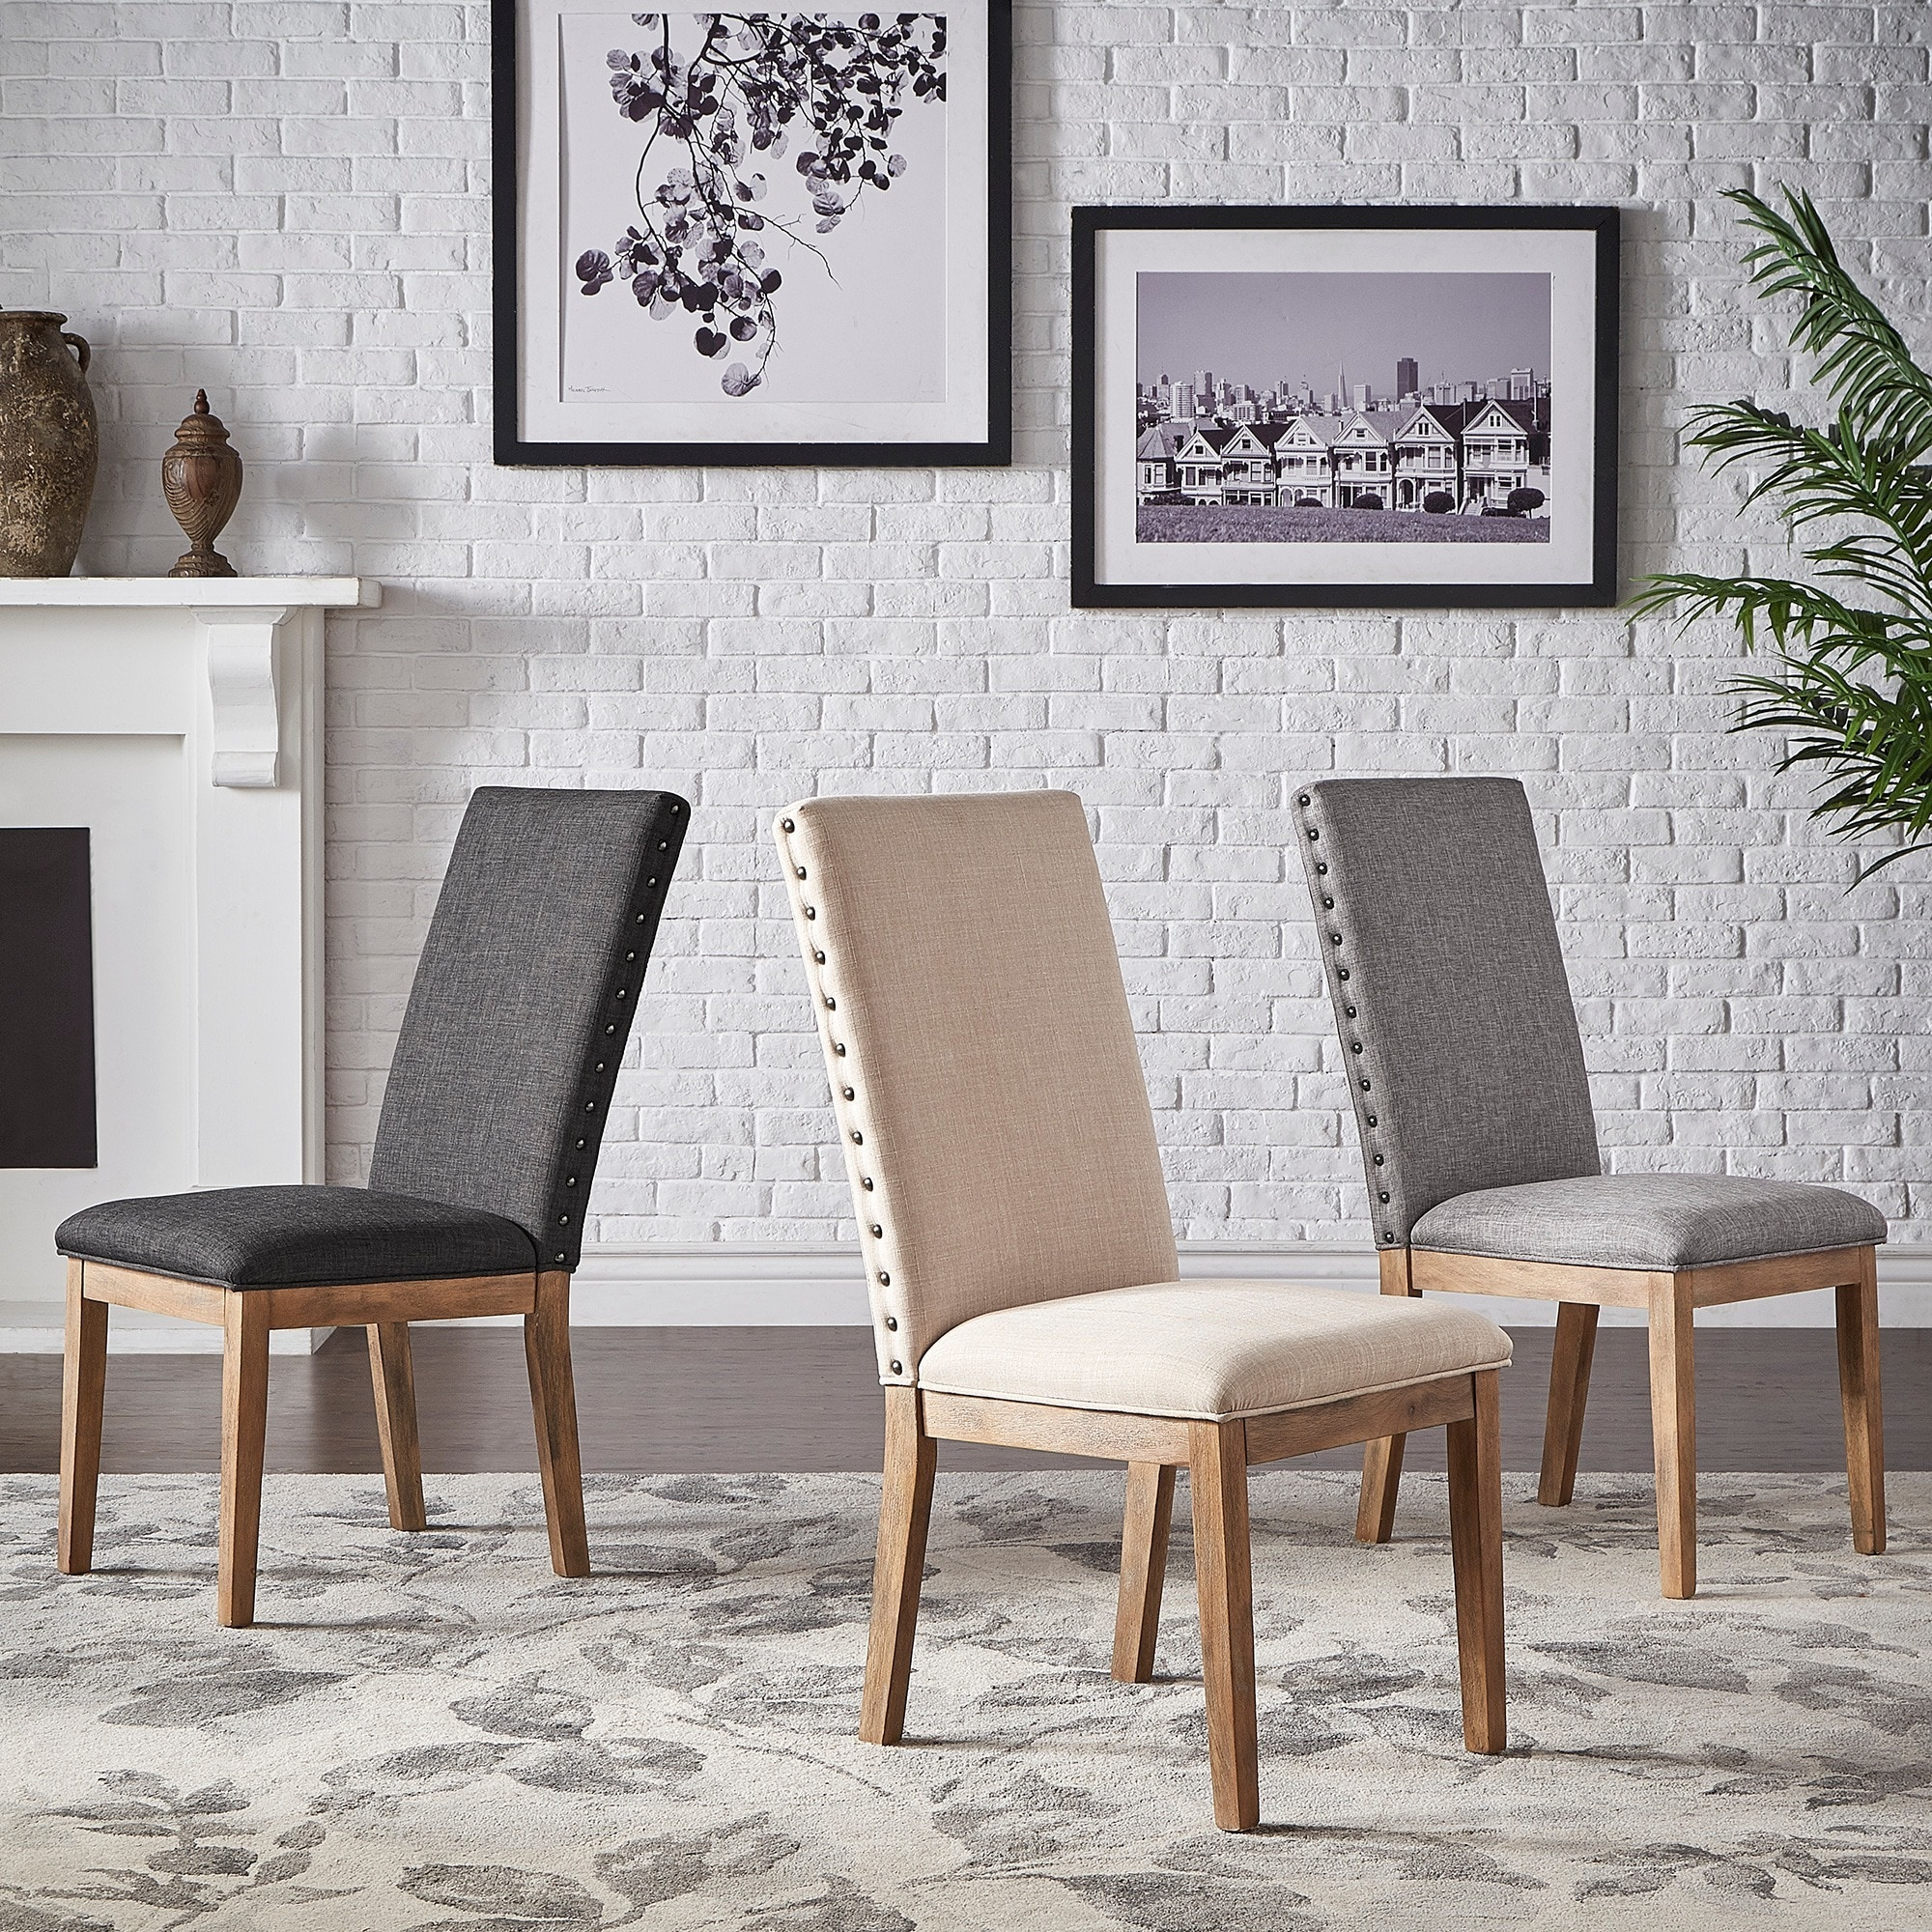 Groovy Voyager Nailhead Accent Parson Linen Dining Chair Set Of 2 By Inspire Q Artisan Uwap Interior Chair Design Uwaporg